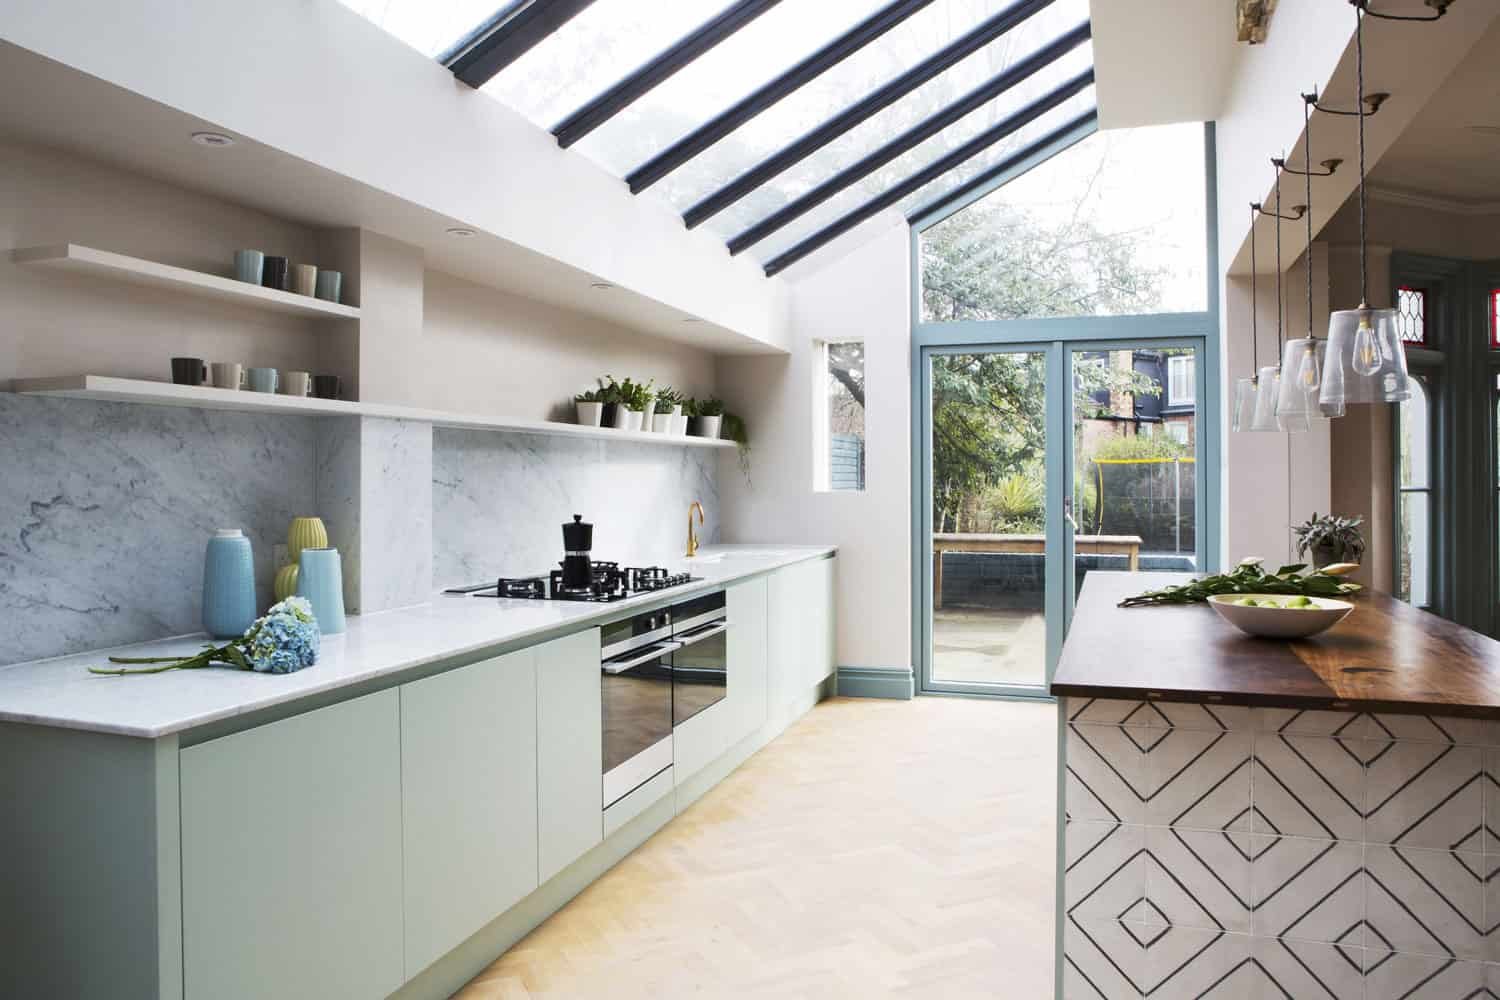 Bespoke kitchen featuring the kitchen island with reclaimed wood worktop and reclaimed tiles.